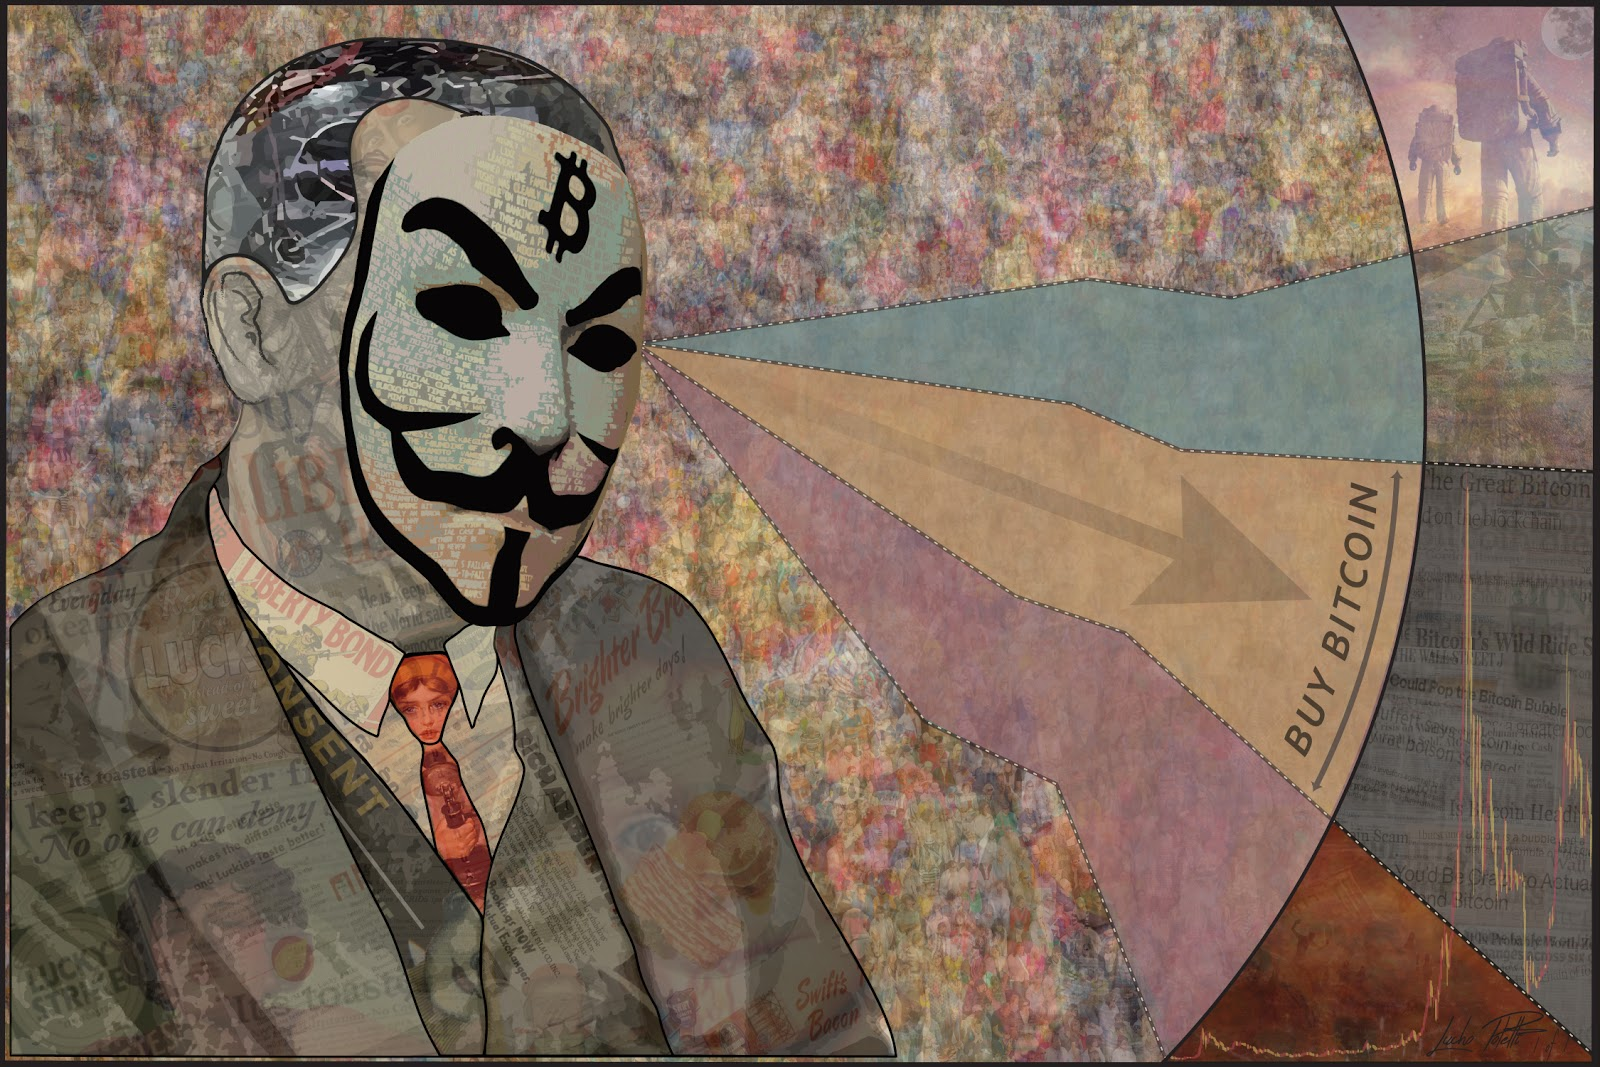 Self-described propagandist Lucho Poletti is on a mission to evangelize Bitcoin through his art.